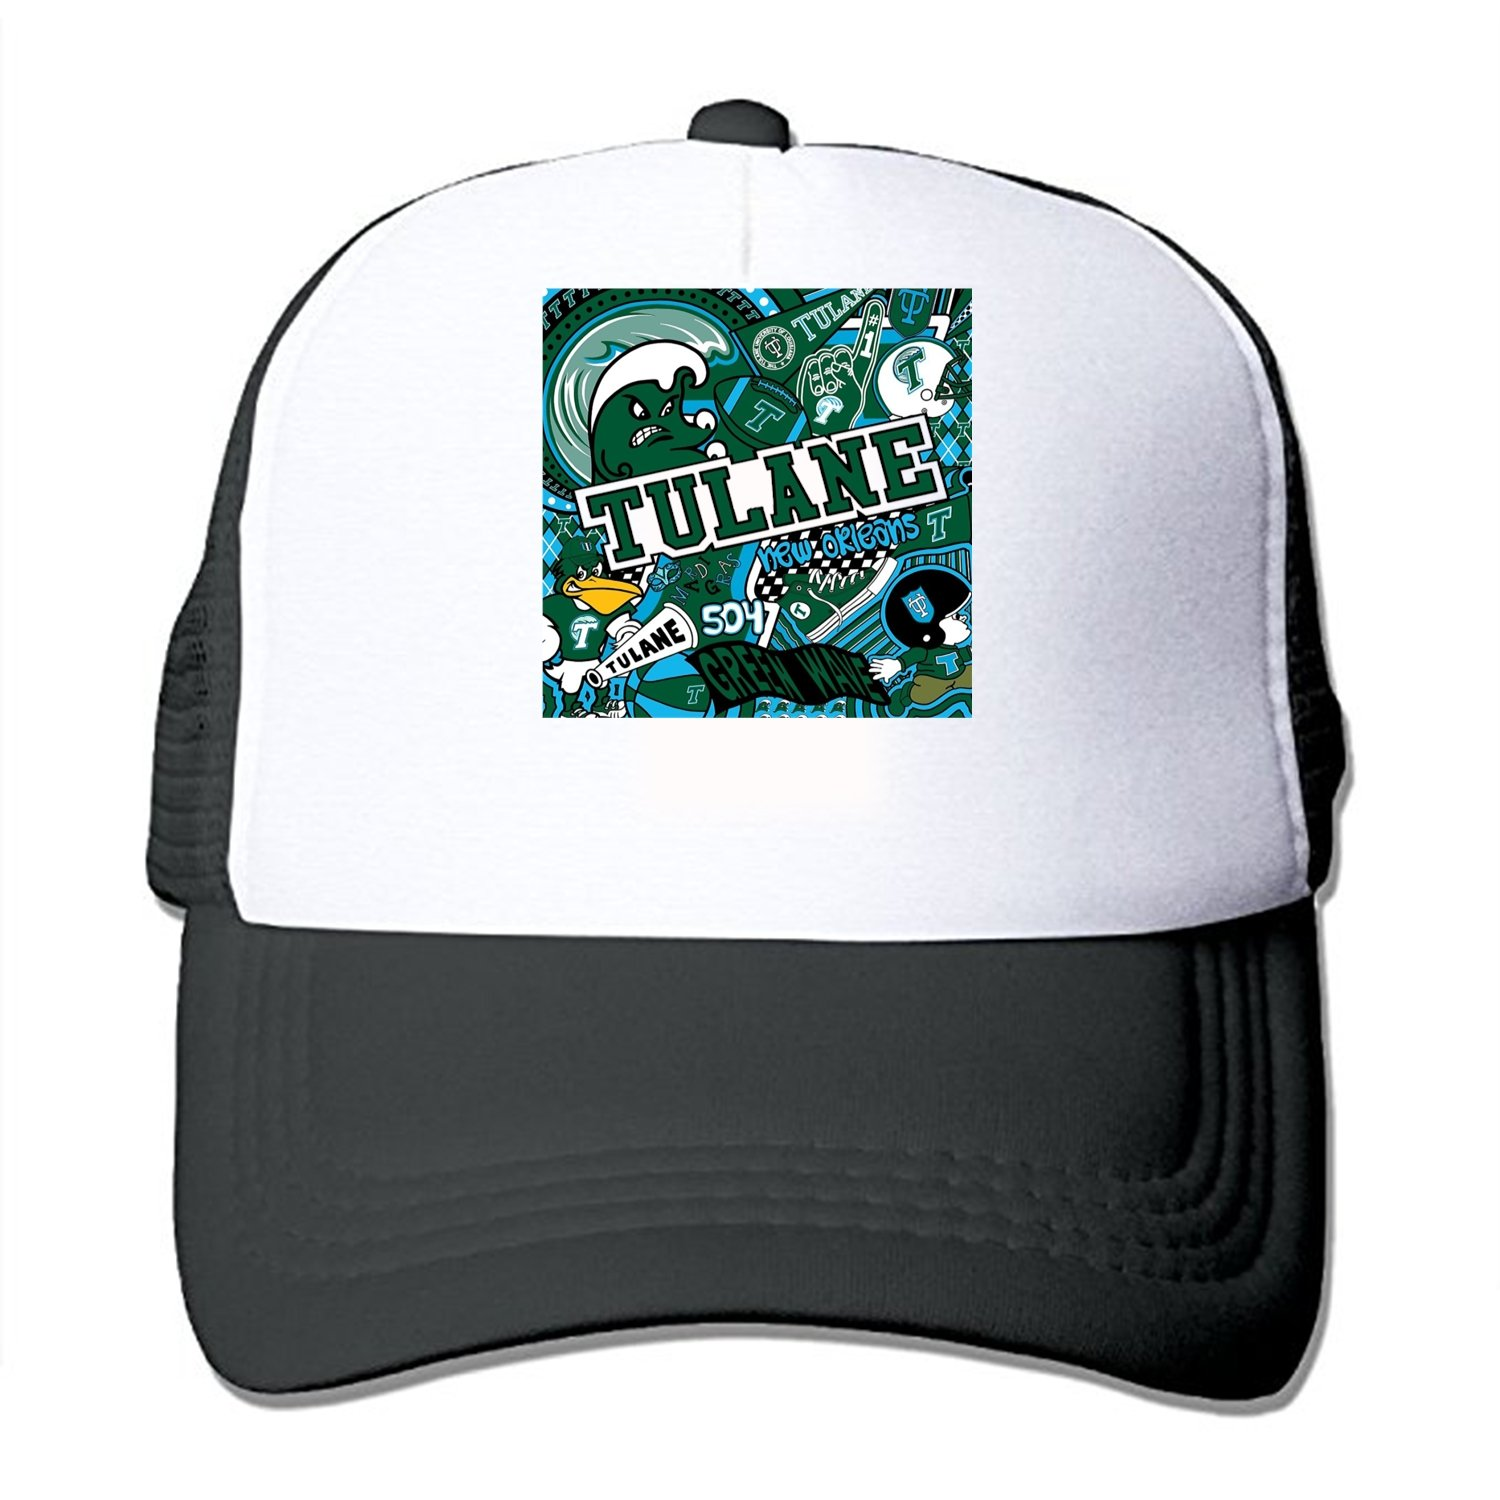 Tulane Collage Mesh Back Trucker Cap Low Profile Adjustable Snapback Hat at  Amazon Men s Clothing store  0eb655fccac